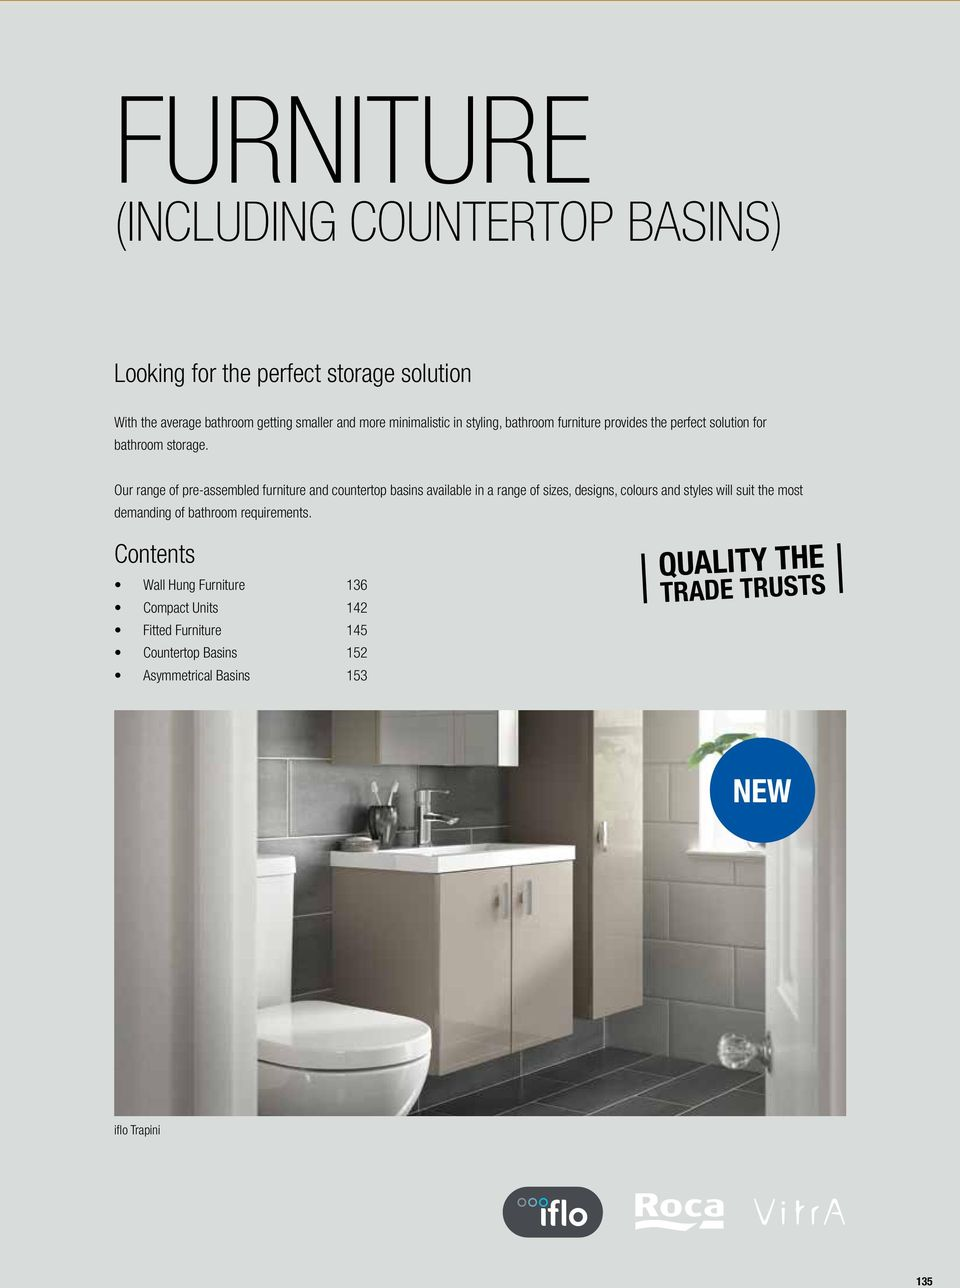 Our range of pre-assembled furniture and countertop basins available in a range of sizes, designs, colours and styles will suit the